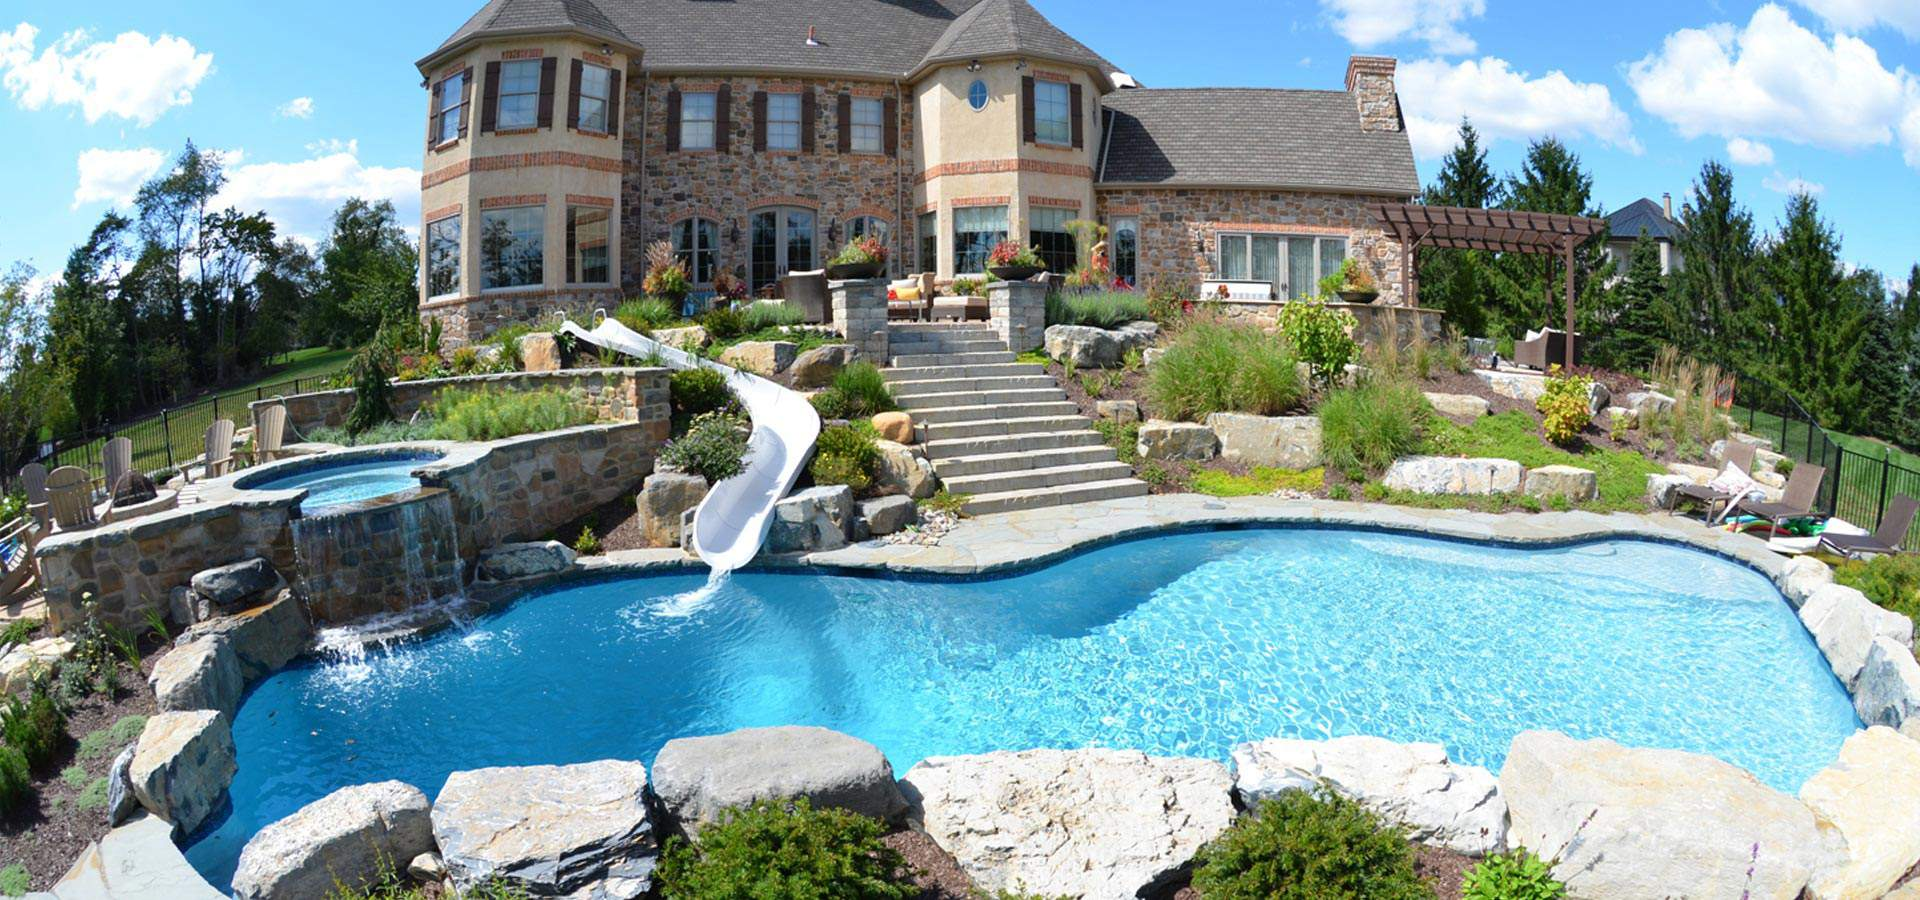 1 pool builder in lehigh valley pa best inground pools for Best swimming pool designs